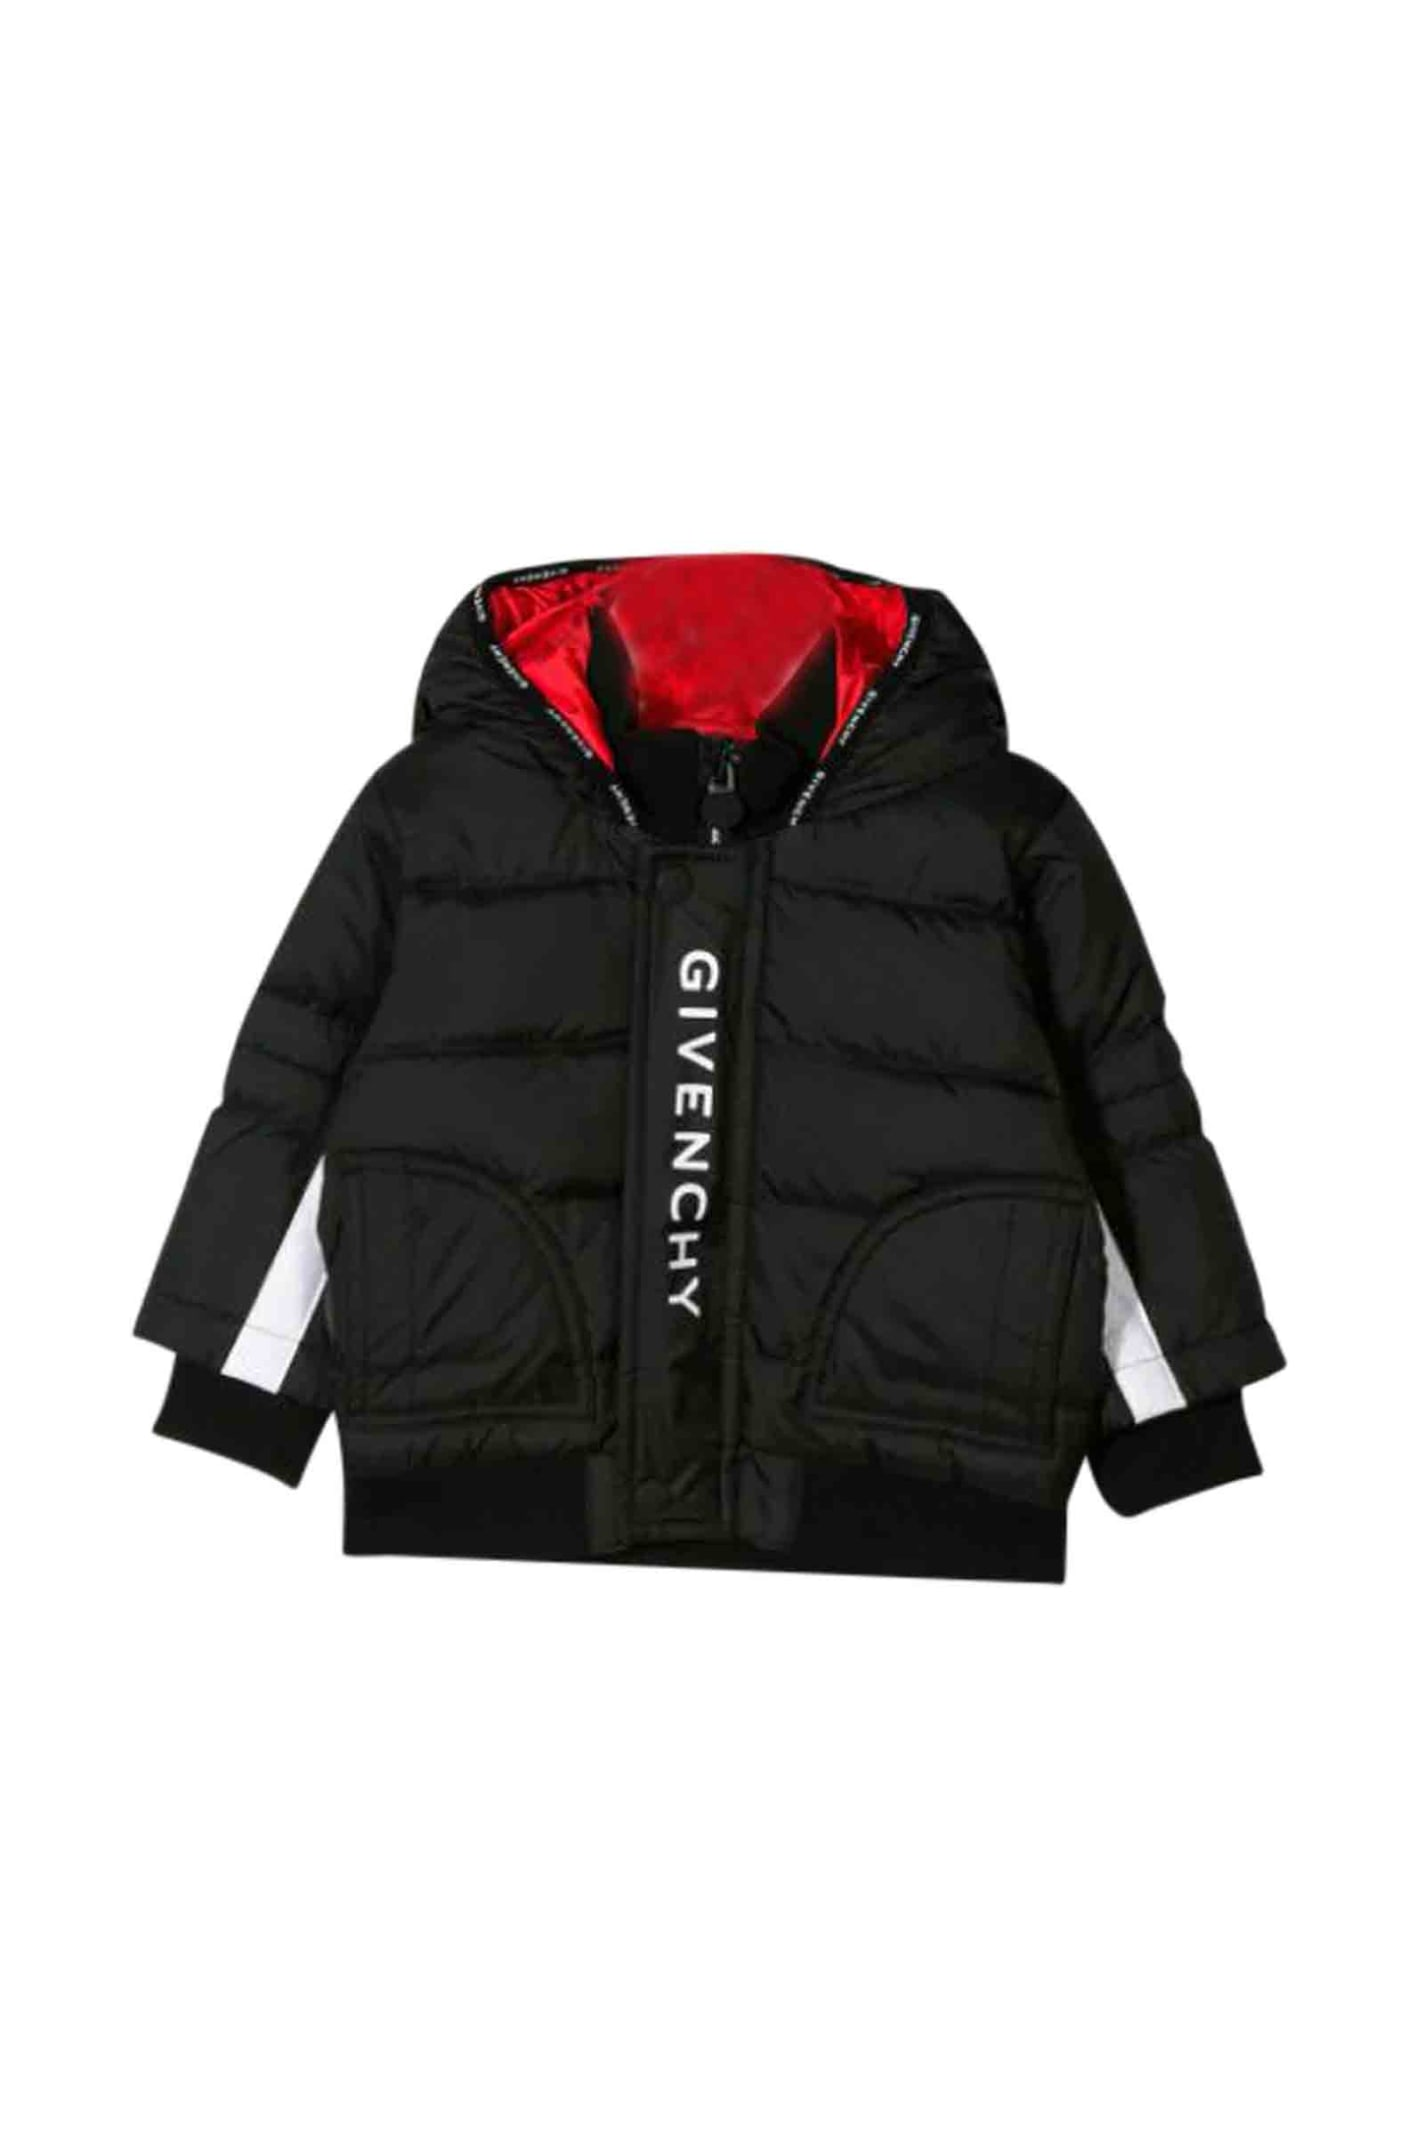 Givenchy Babies' Printed Padded Jacket In Nero